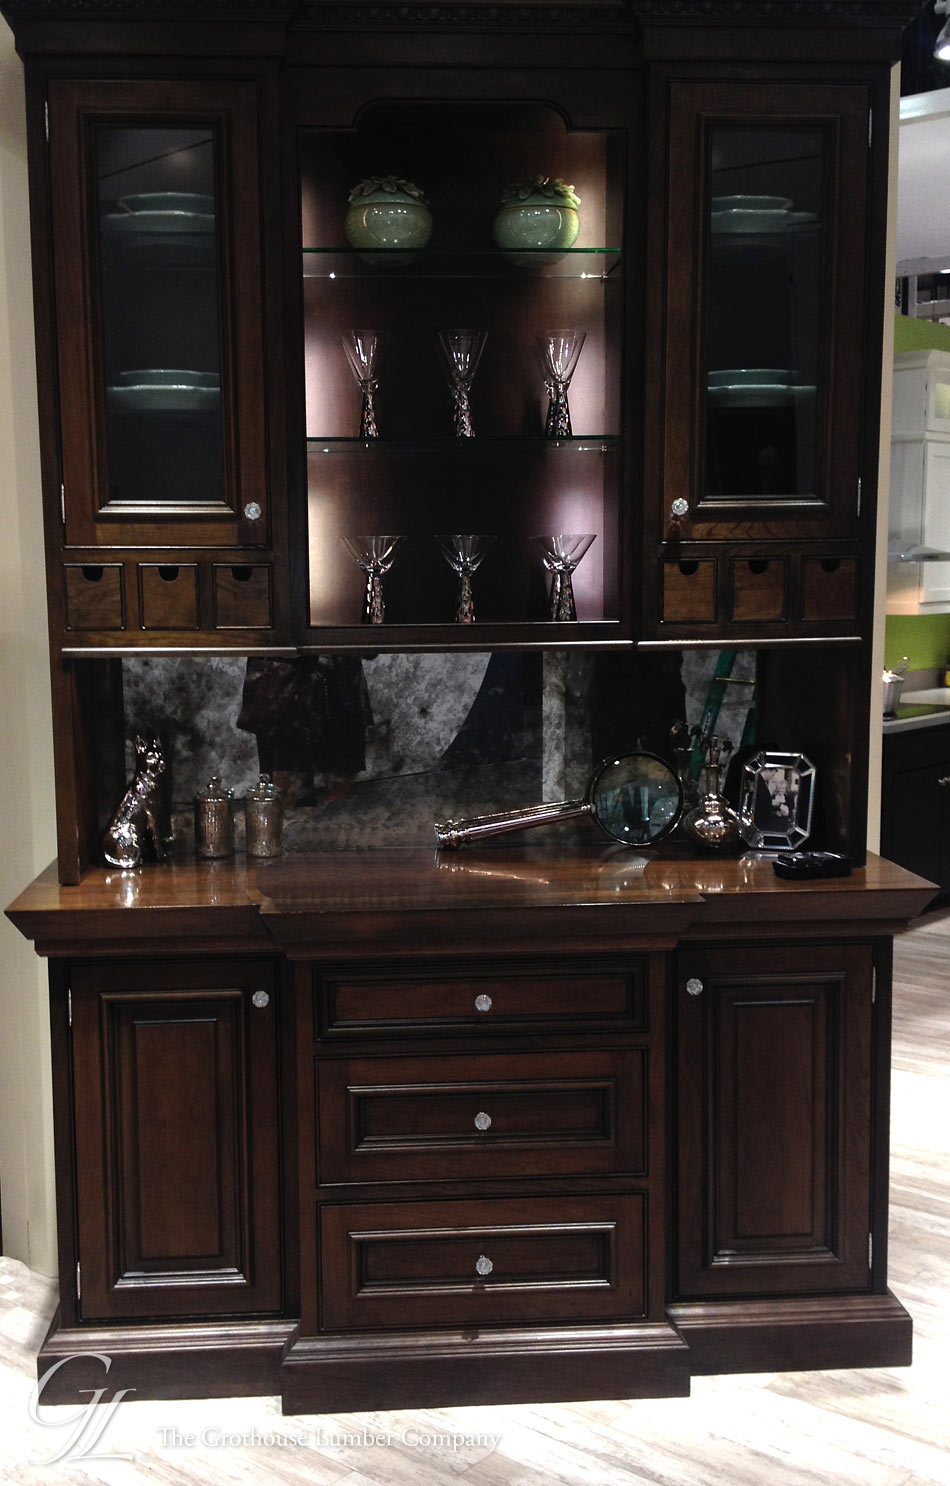 Custom Stained Cherry Countertop in Elkay Booth at KBIS 2014